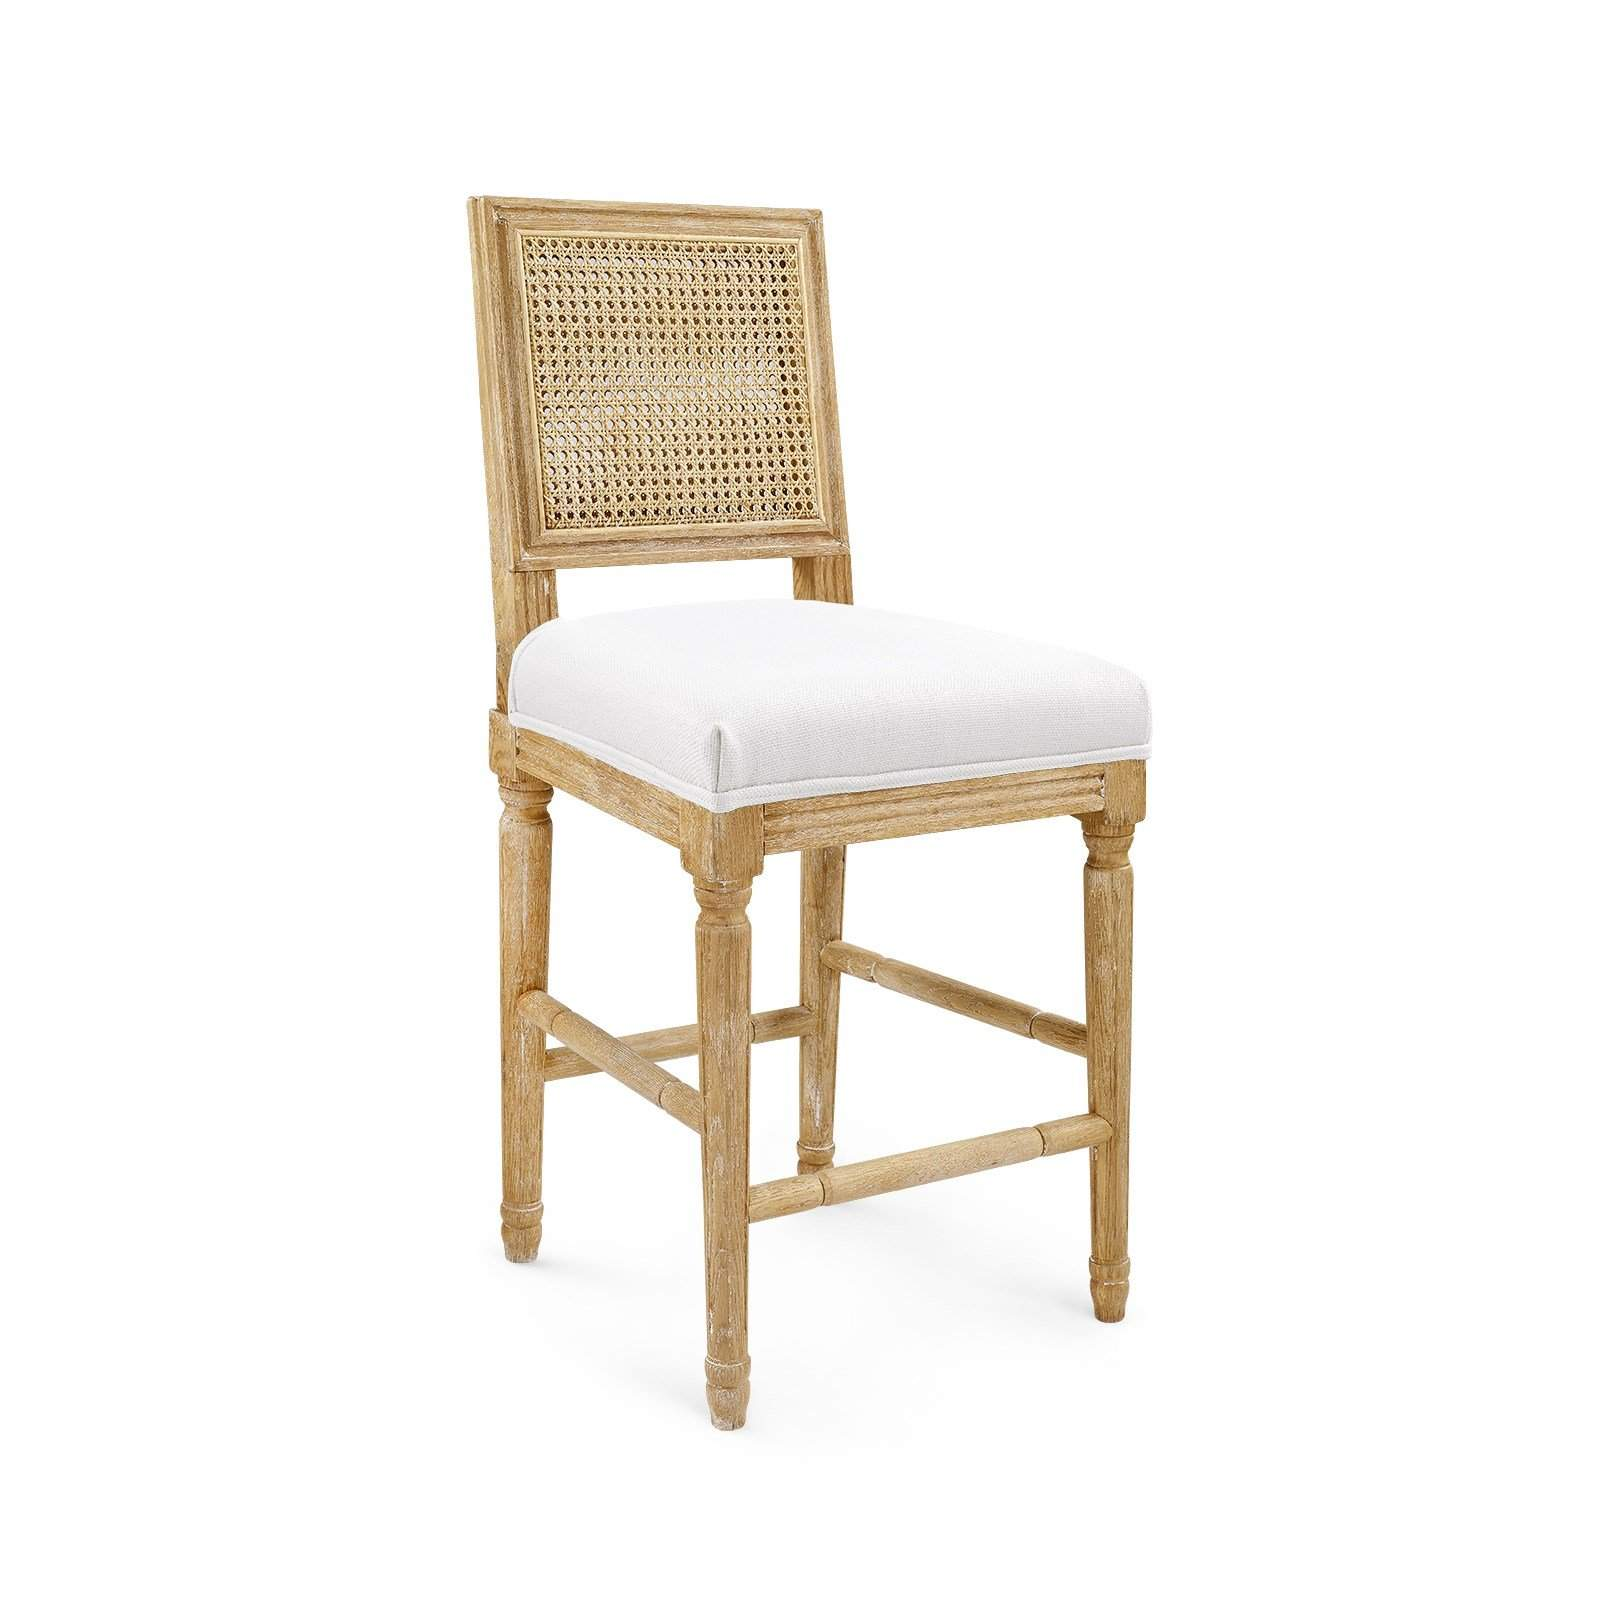 Bungalow 5 - ANNETTE COUNTER STOOL in NATURAL